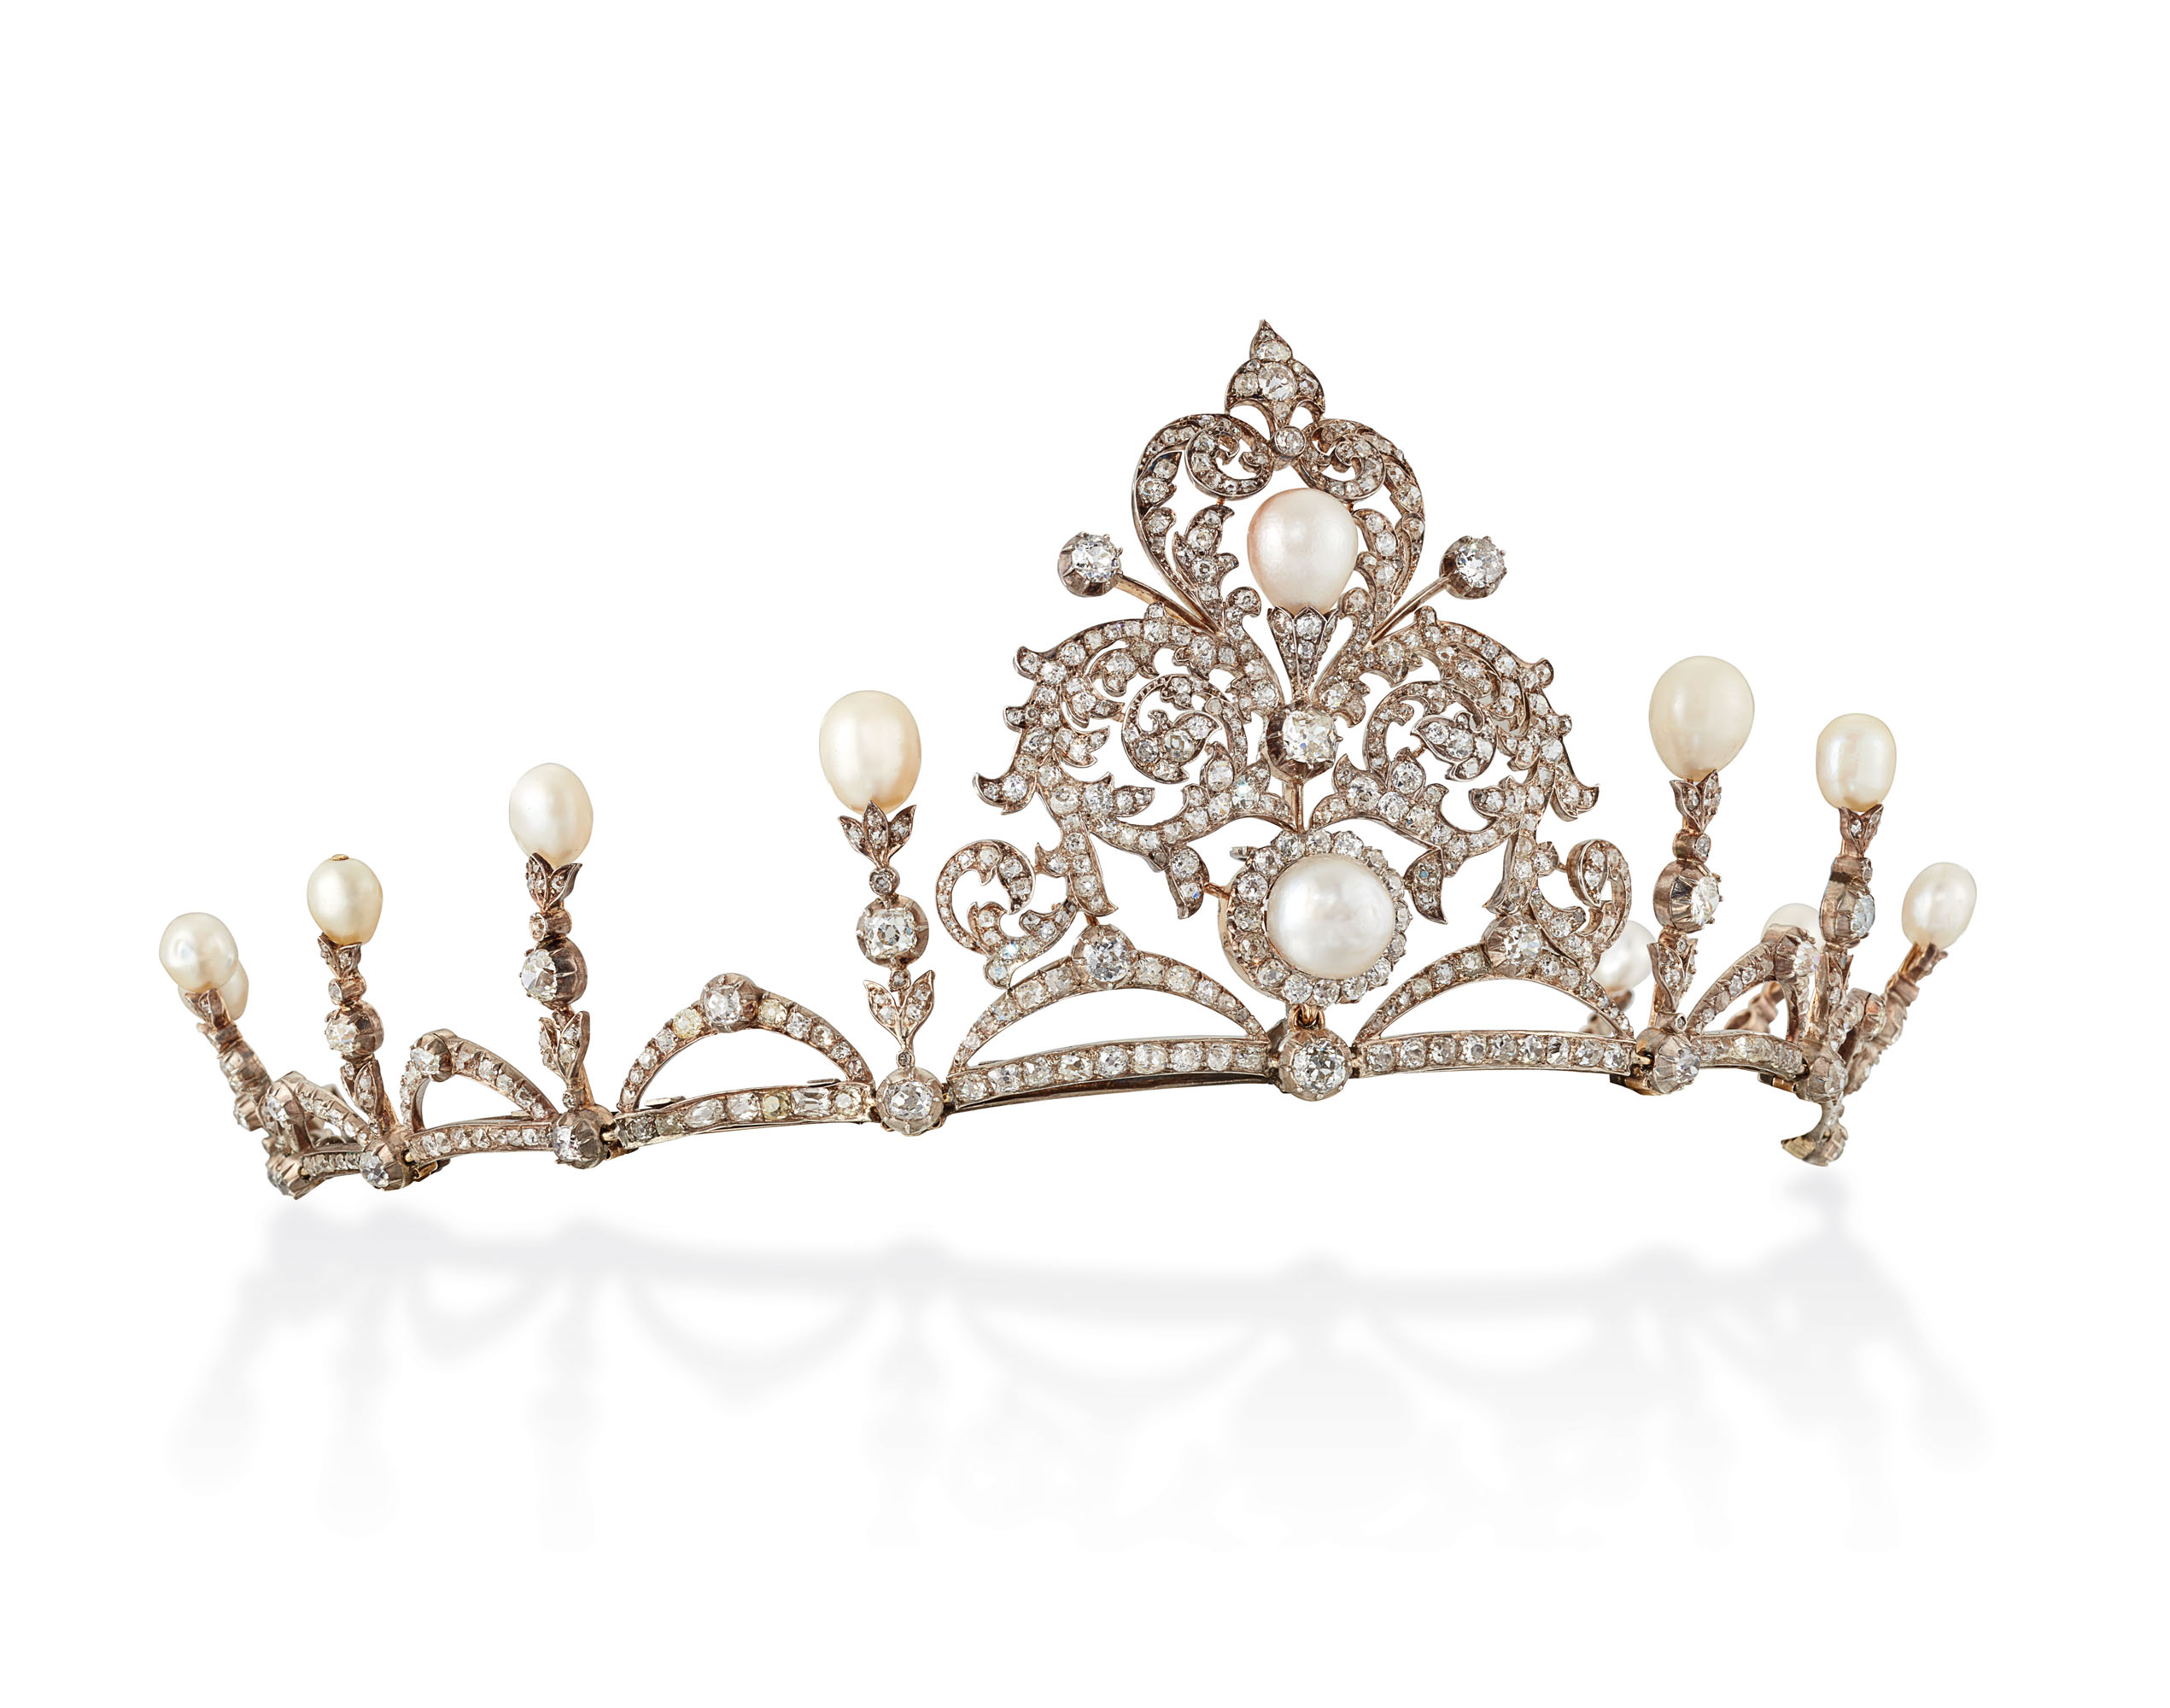 LATE 19TH CENTURY NATURAL PEARL AND DIAMOND TIARA / NECKLACE